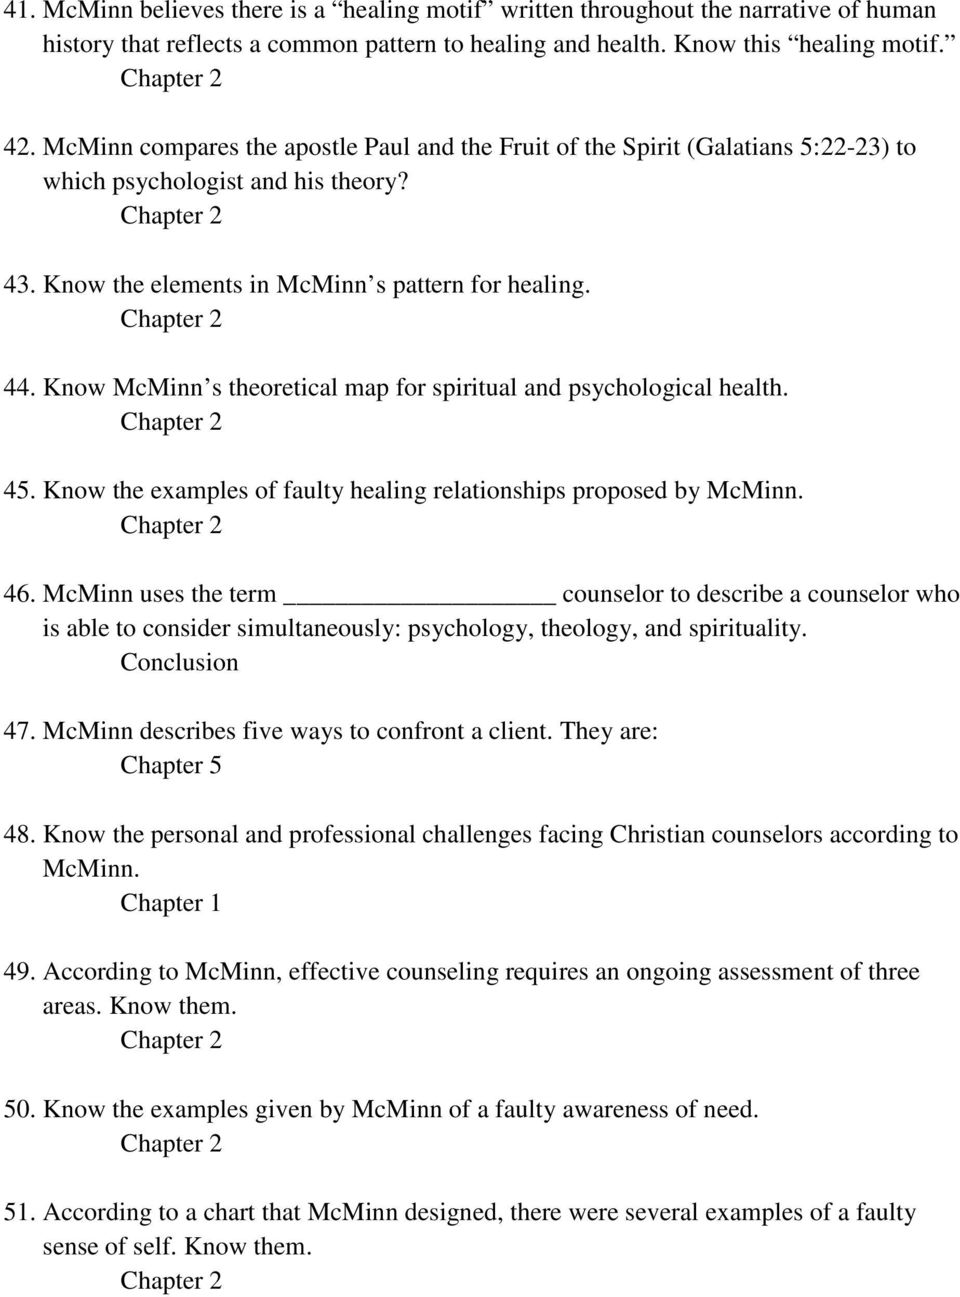 mcminns psychology theology and spirituality in christian counseling religion essay View essay - coun 506 4mat review mcminn from coun 506 at liberty running head: 4mat review mcminn 1 4mat review of mcminns psychology, theology, and spirituality in christian counseling.